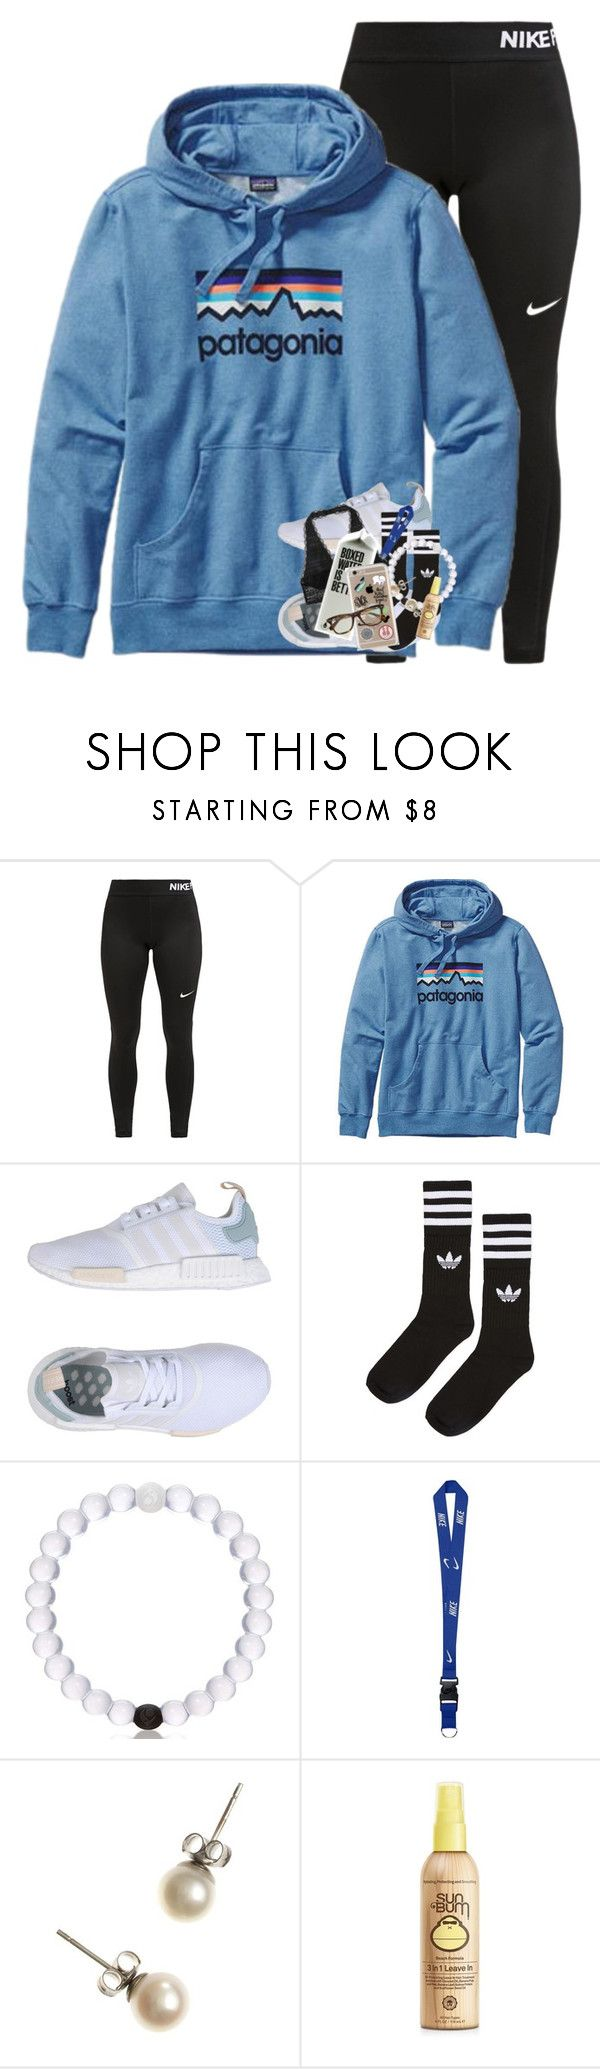 """I'm leaving Canstio New York tomorrow:("" by summerdreaming7 ❤ liked on Polyvore featuring NIKE, Patagonia, adidas Originals, adidas, J.Crew, Forever 21 and Ray-Ban"